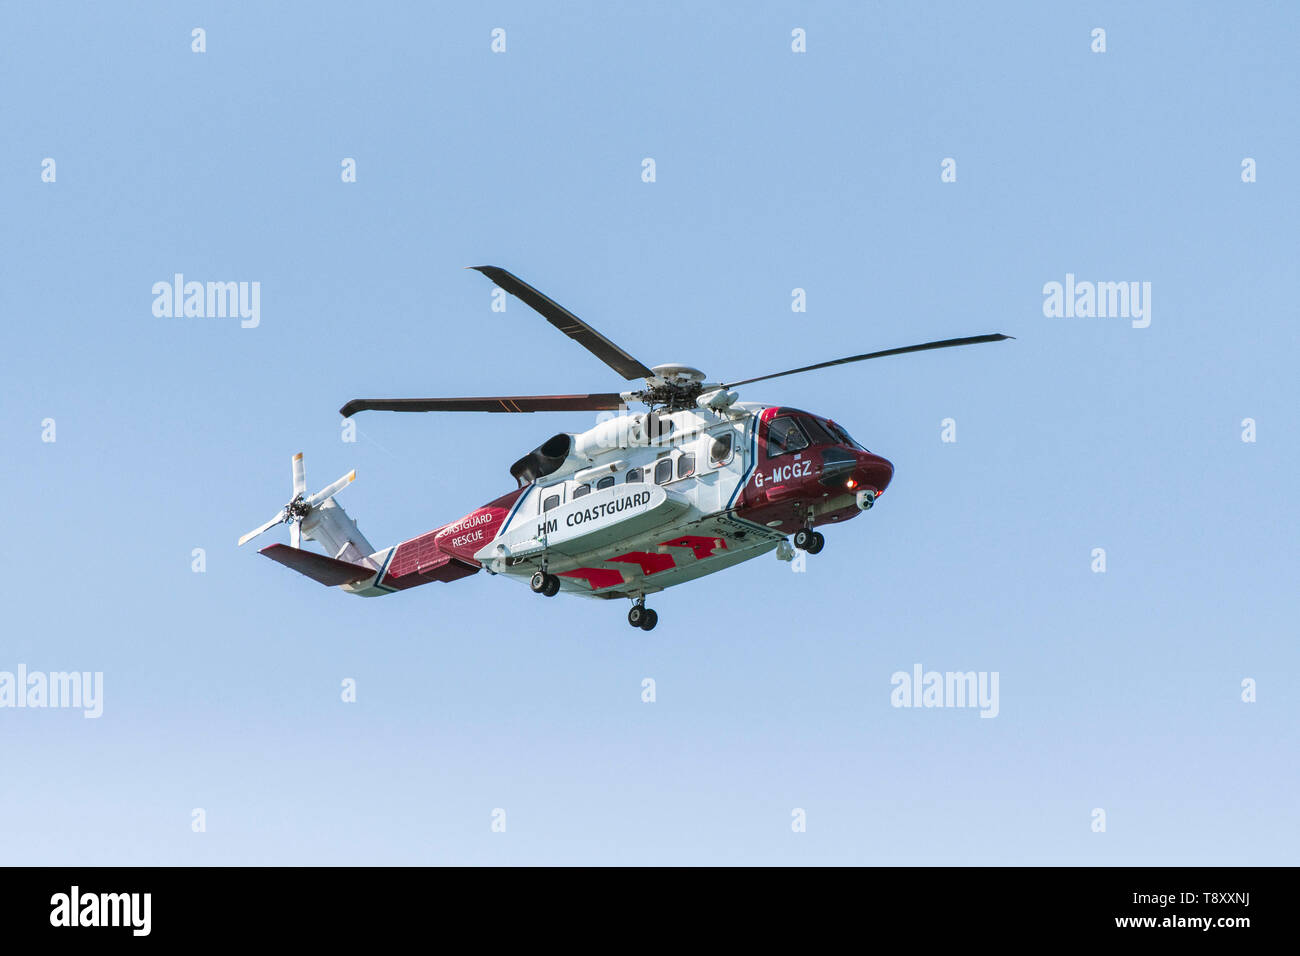 A Sikorsky S-92A HM Coastguard SAR Helicopter G-MCGZ operated by Bristol Helicopters flying overhead on the North Cornwall coast, England, UK. - Stock Image